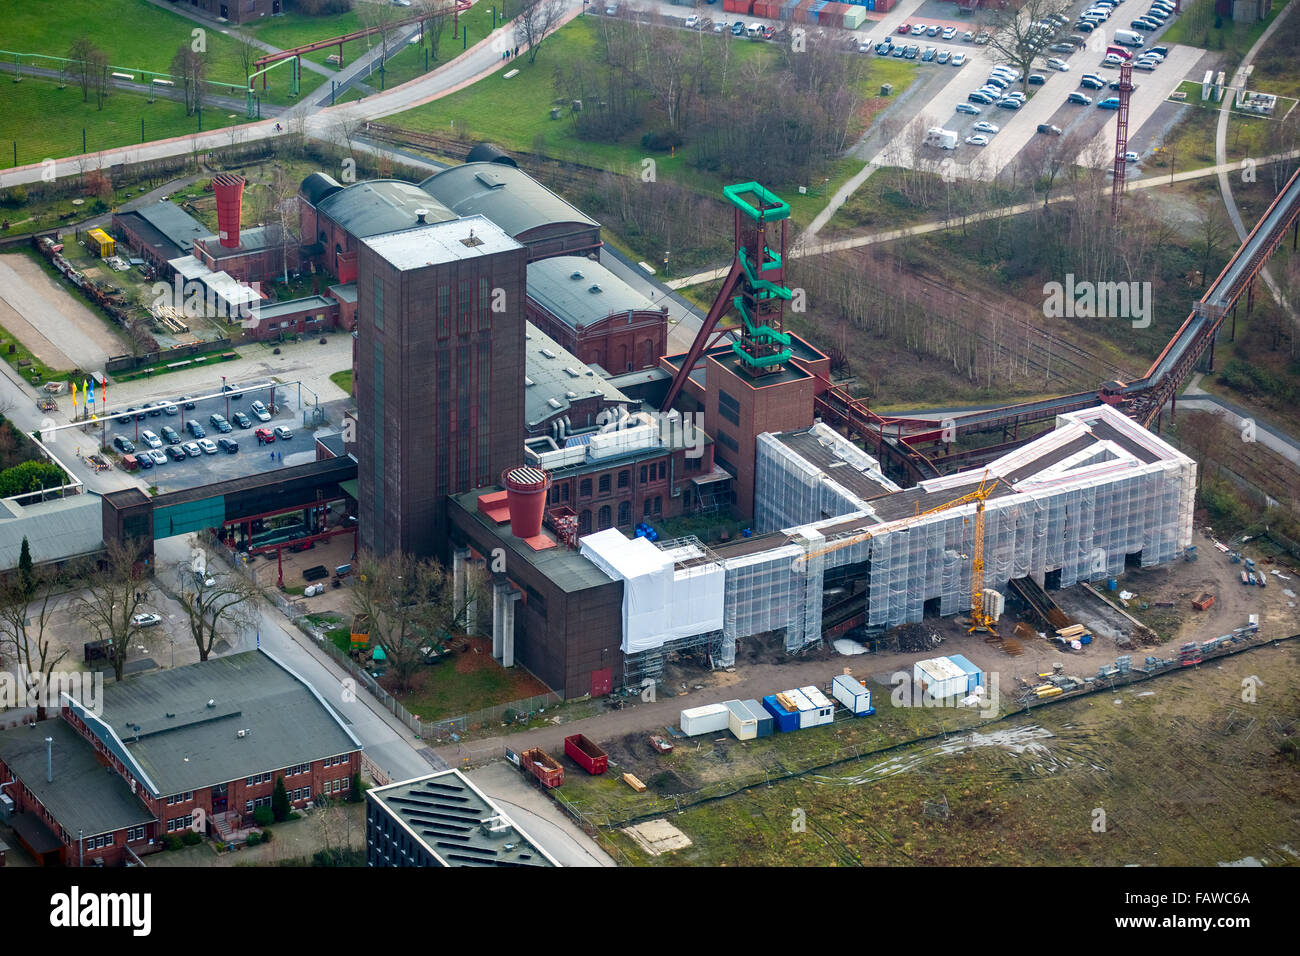 Pact Zollverein, construction Arendahls Wiese, a World Heritage Site Zollverein colliery Essen, North Rhine-Westphalia, - Stock Image